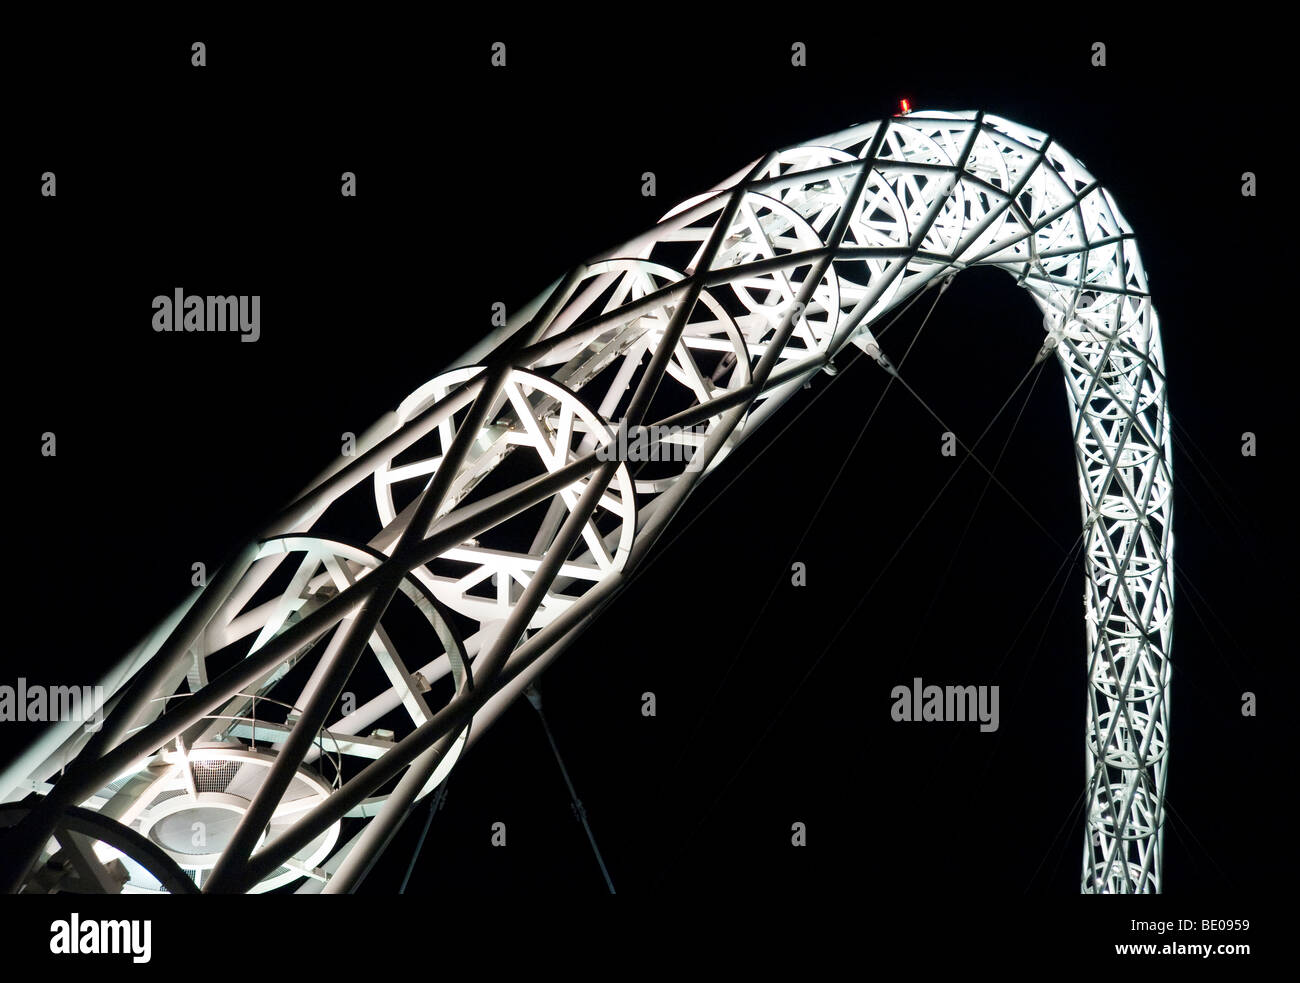 Wembley stadium arch in London England - Stock Image